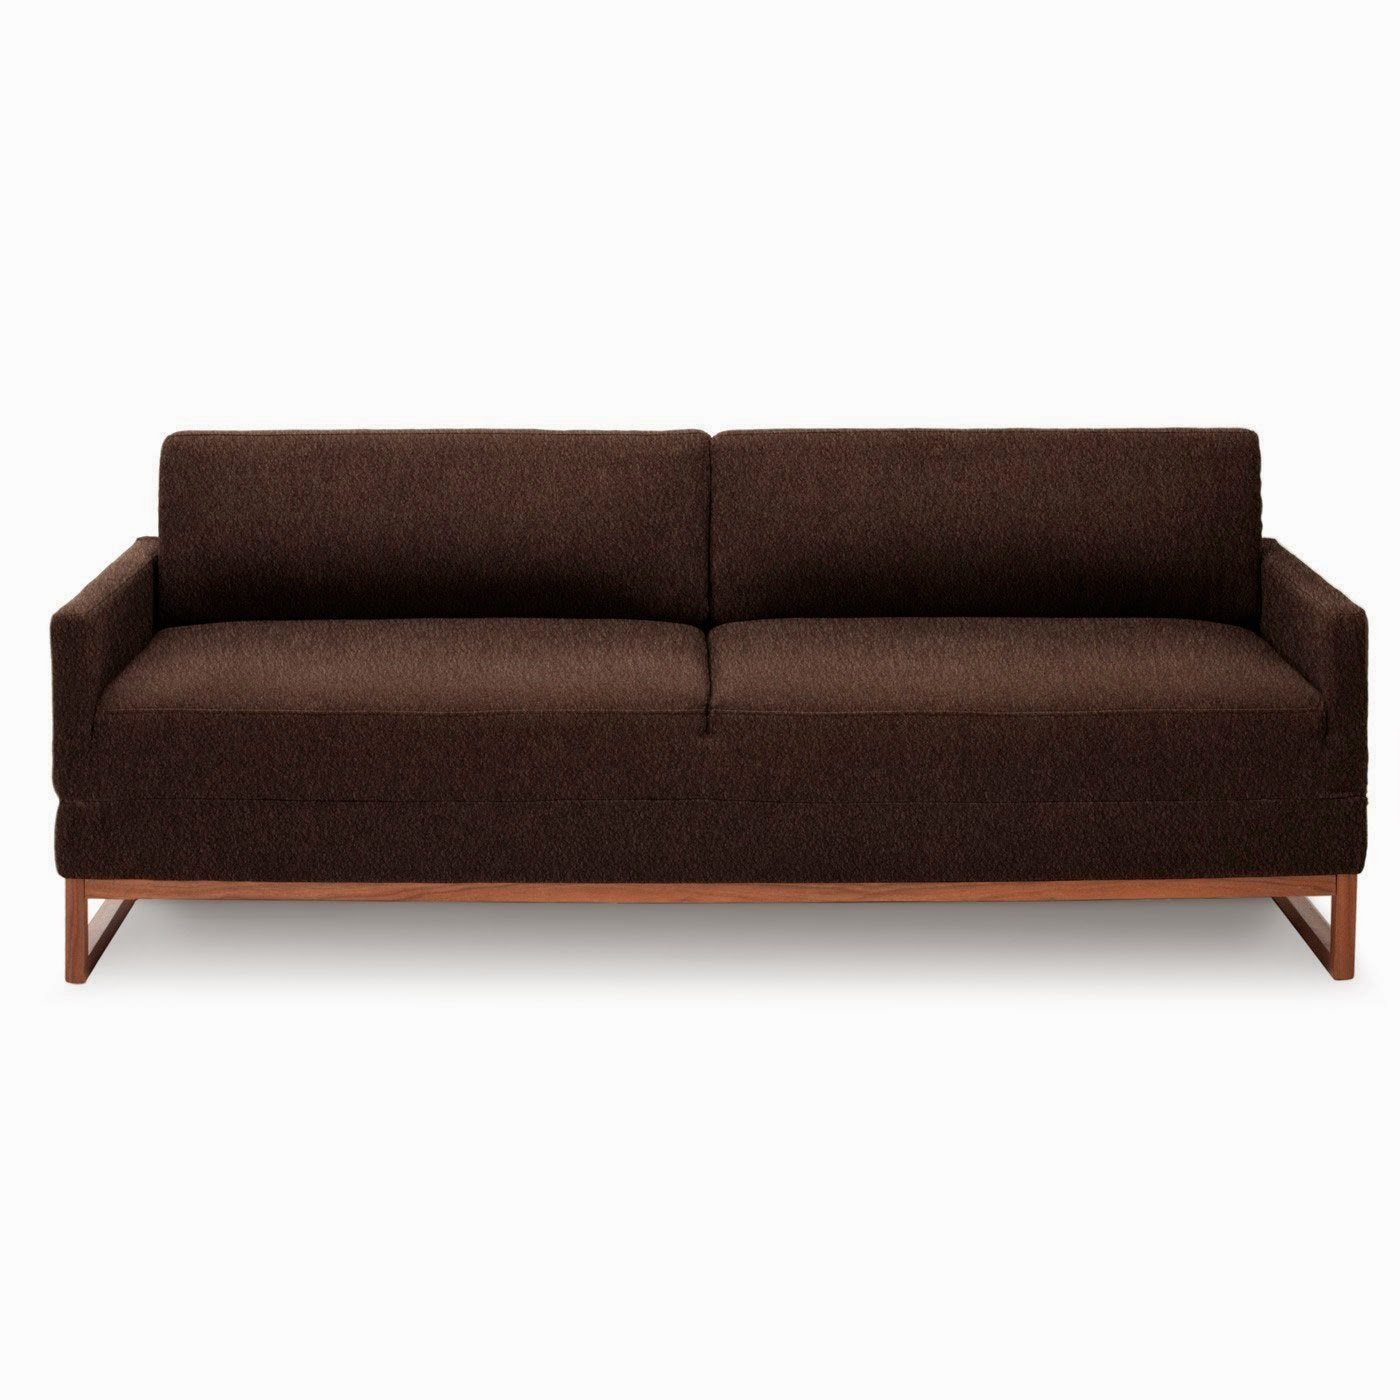 Convertible sofa leather convertible sofa for Divan convertible